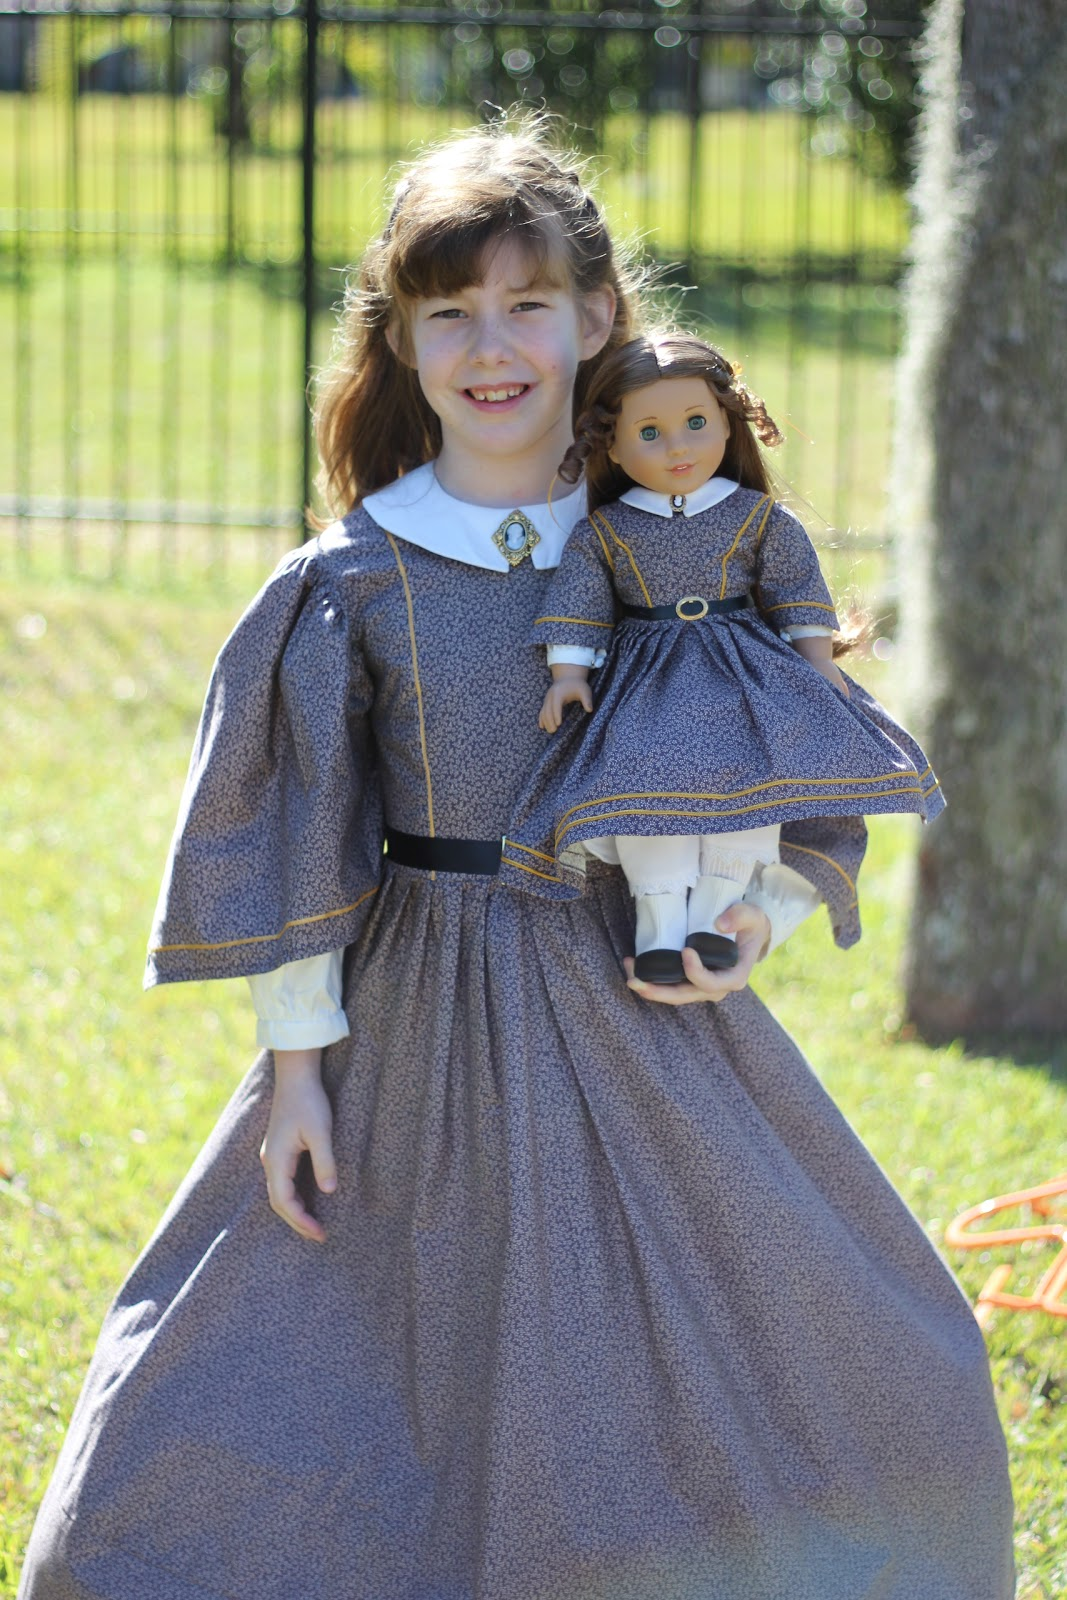 Saint Nolt Sews: Kirsten's or 1850's Costume and AG Doll Dress